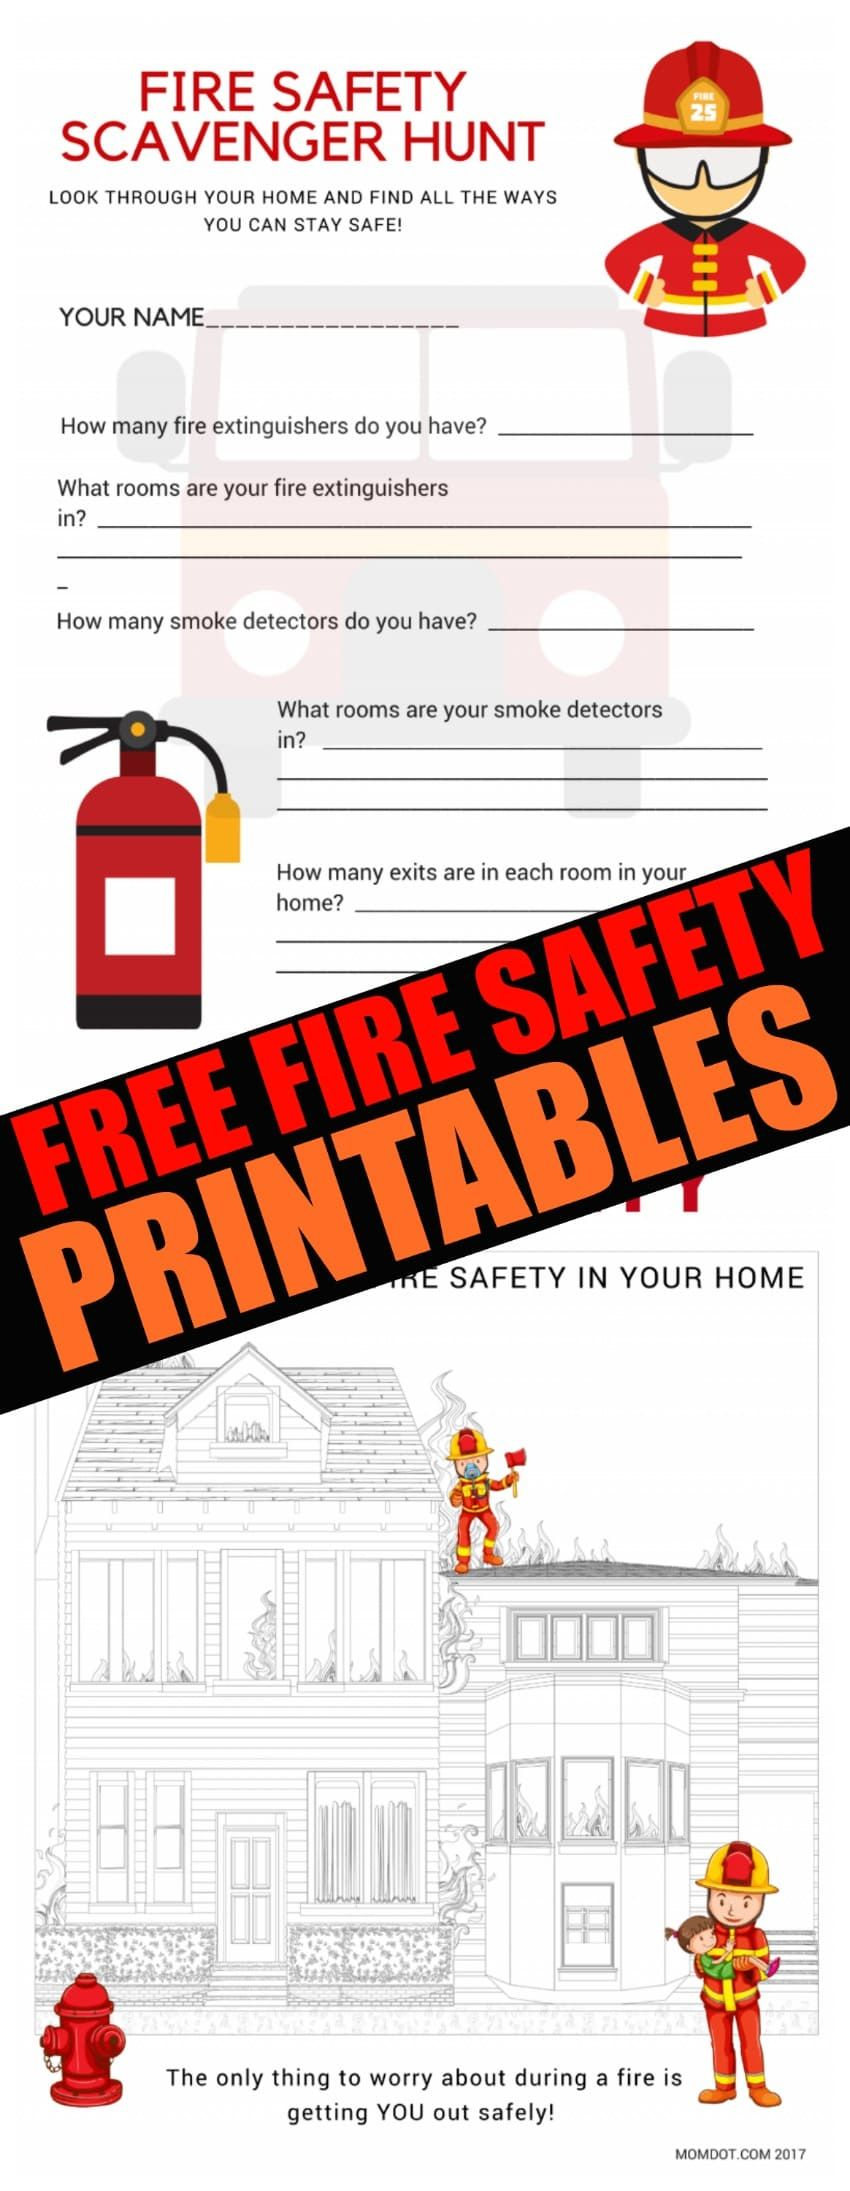 Making A Fire Safety Plan Tools Tips And Tricks National Fire Safety Day October 2017 Teachin Fire Safety For Kids Fire Safety Activities Fire Safety Free [ 2191 x 850 Pixel ]